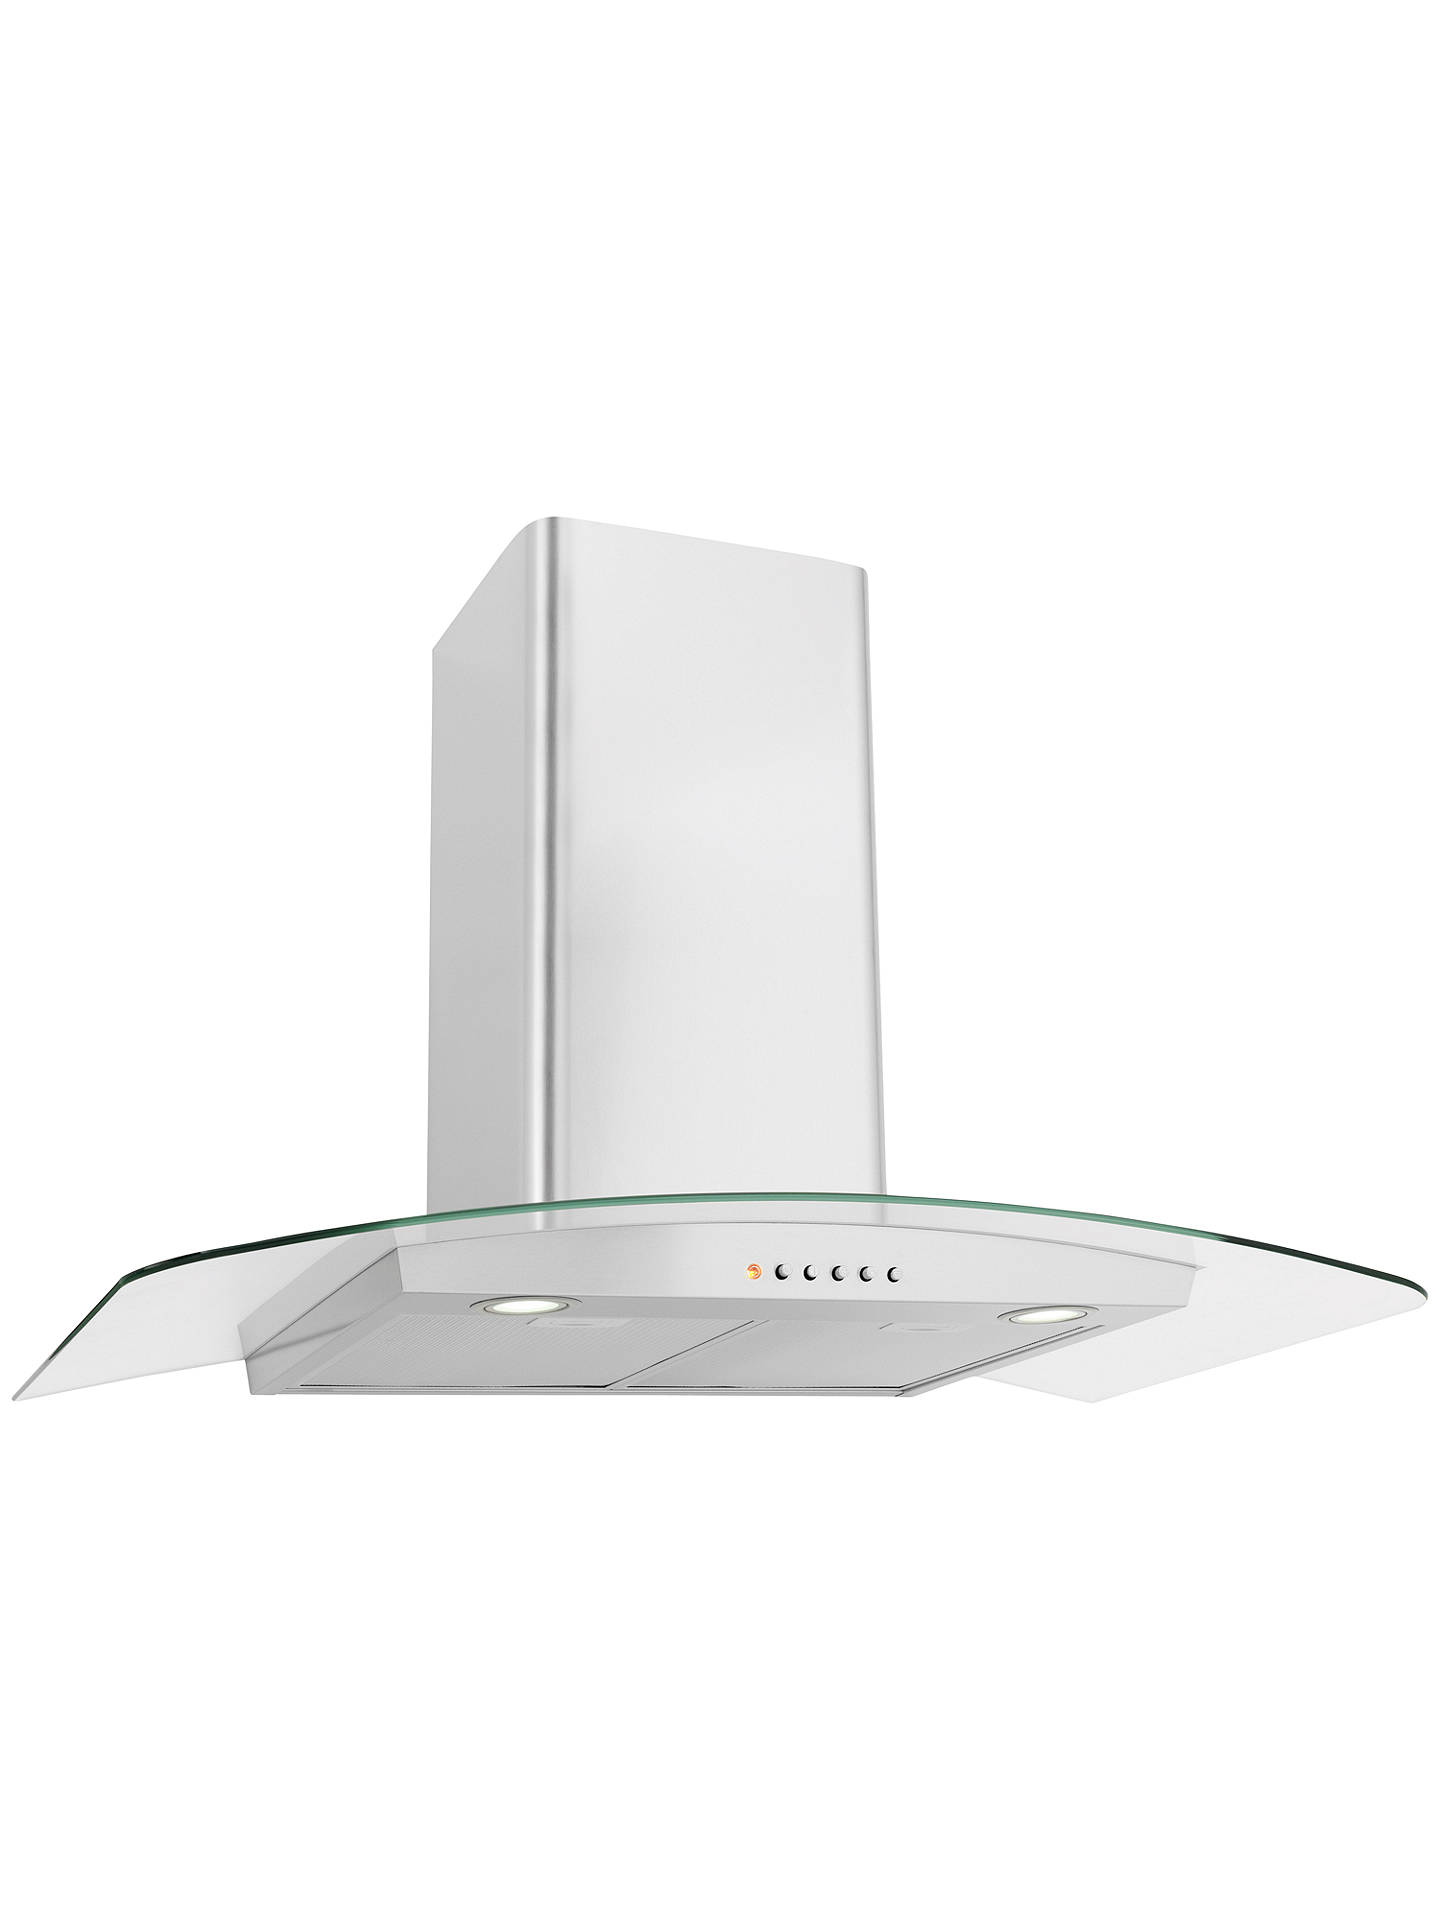 BuyJohn Lewis & Partners JLHDA923 Chimney Cooker Hood, Stainless Steel and Curved Clear Glass Online at johnlewis.com